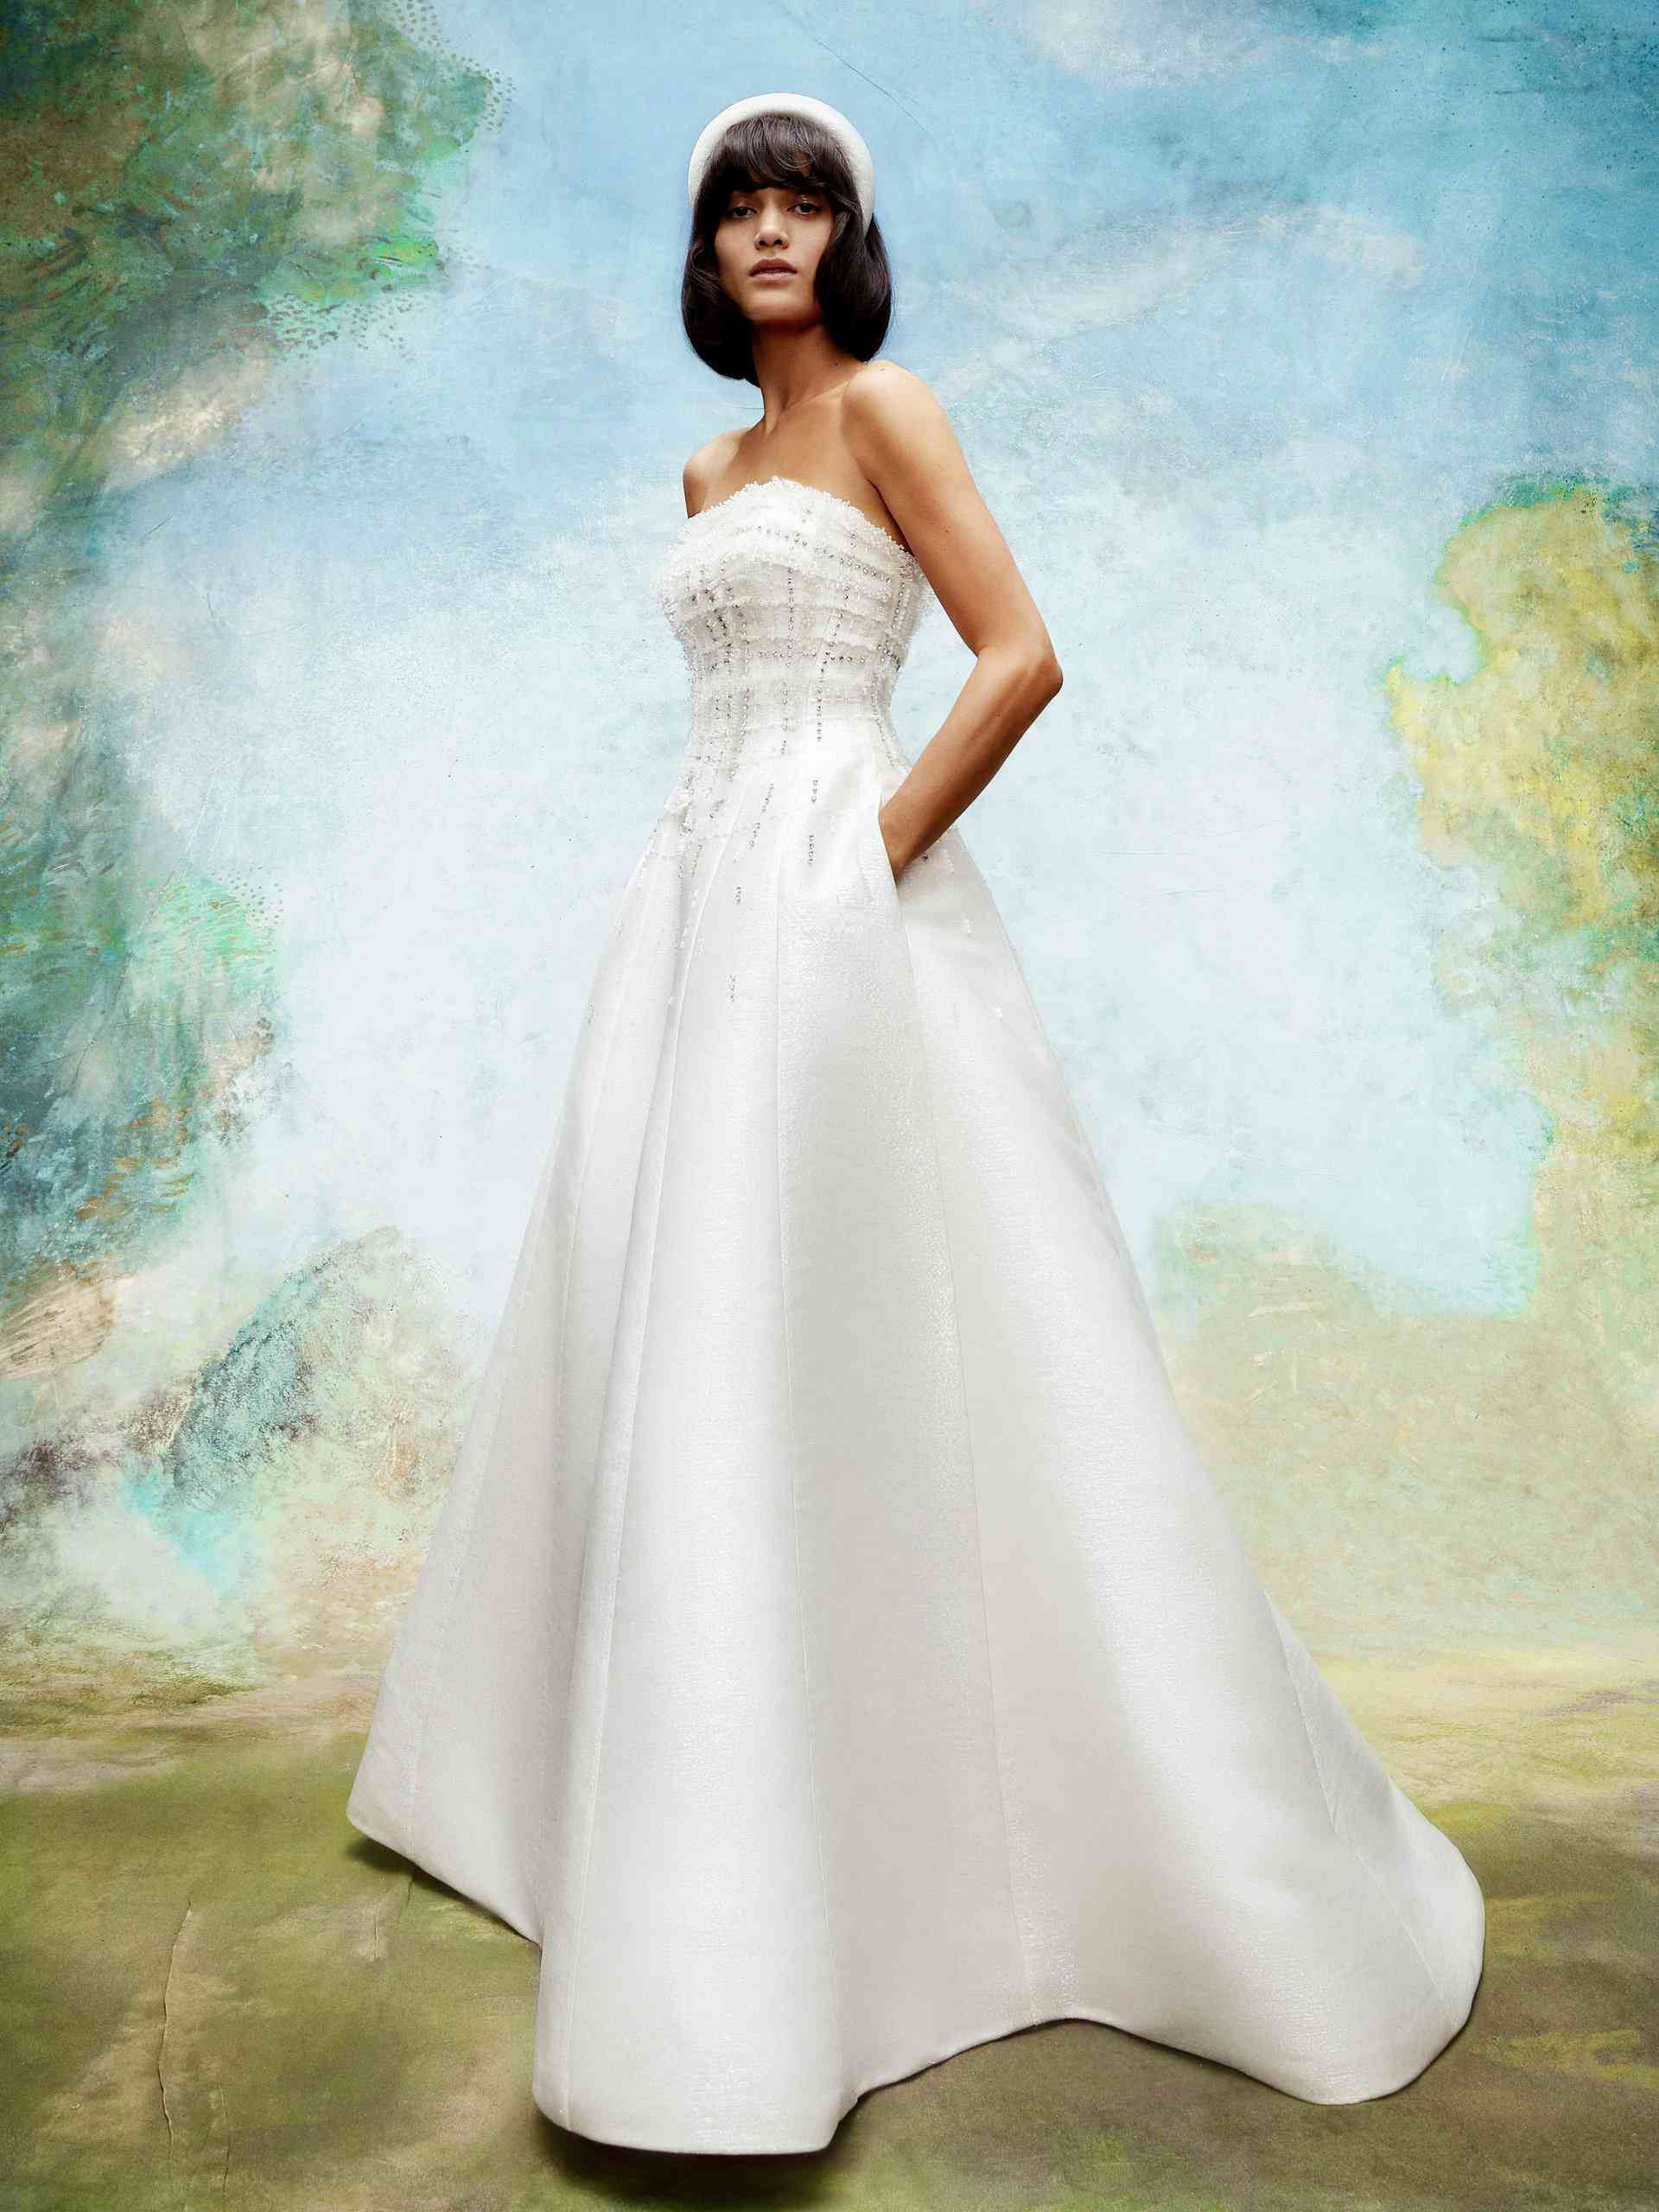 Model in strapless white wedding gown with pockets